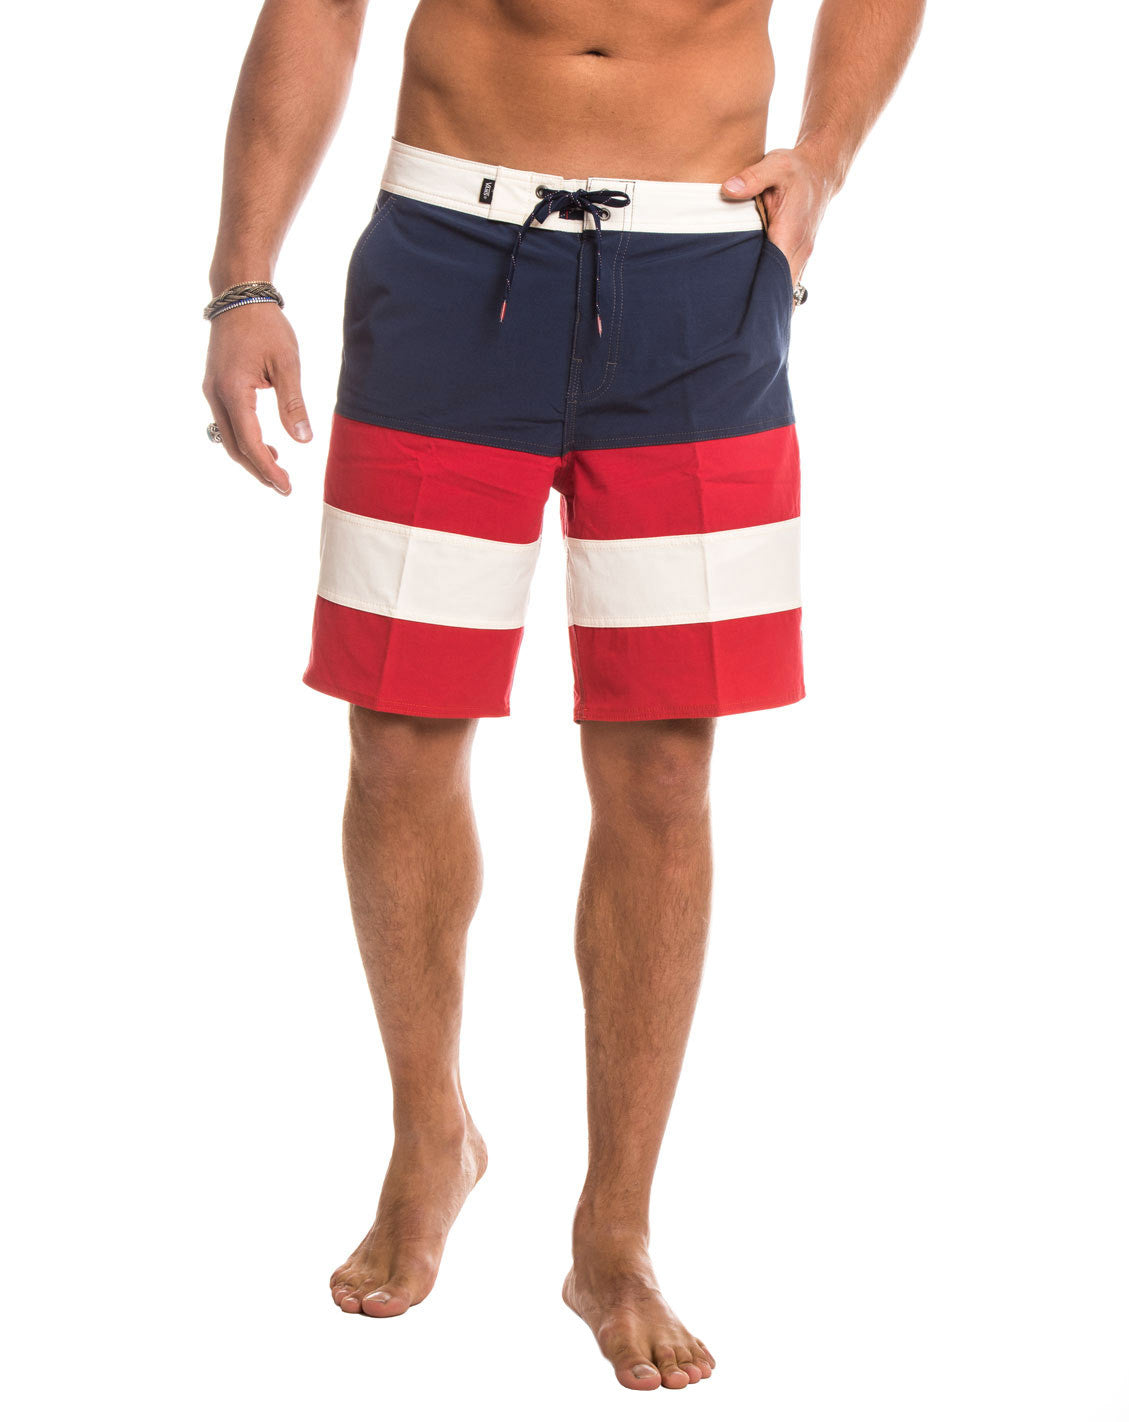 MEN'S CLOTHING | SWIMWEAR | ERA PANEL BOARDSHORTS | DRESS BLUES | RACING RED | TECHNICAL FABRIC | KNEE LENGTH | #SUMMERVIBES | VANS | NOHOW